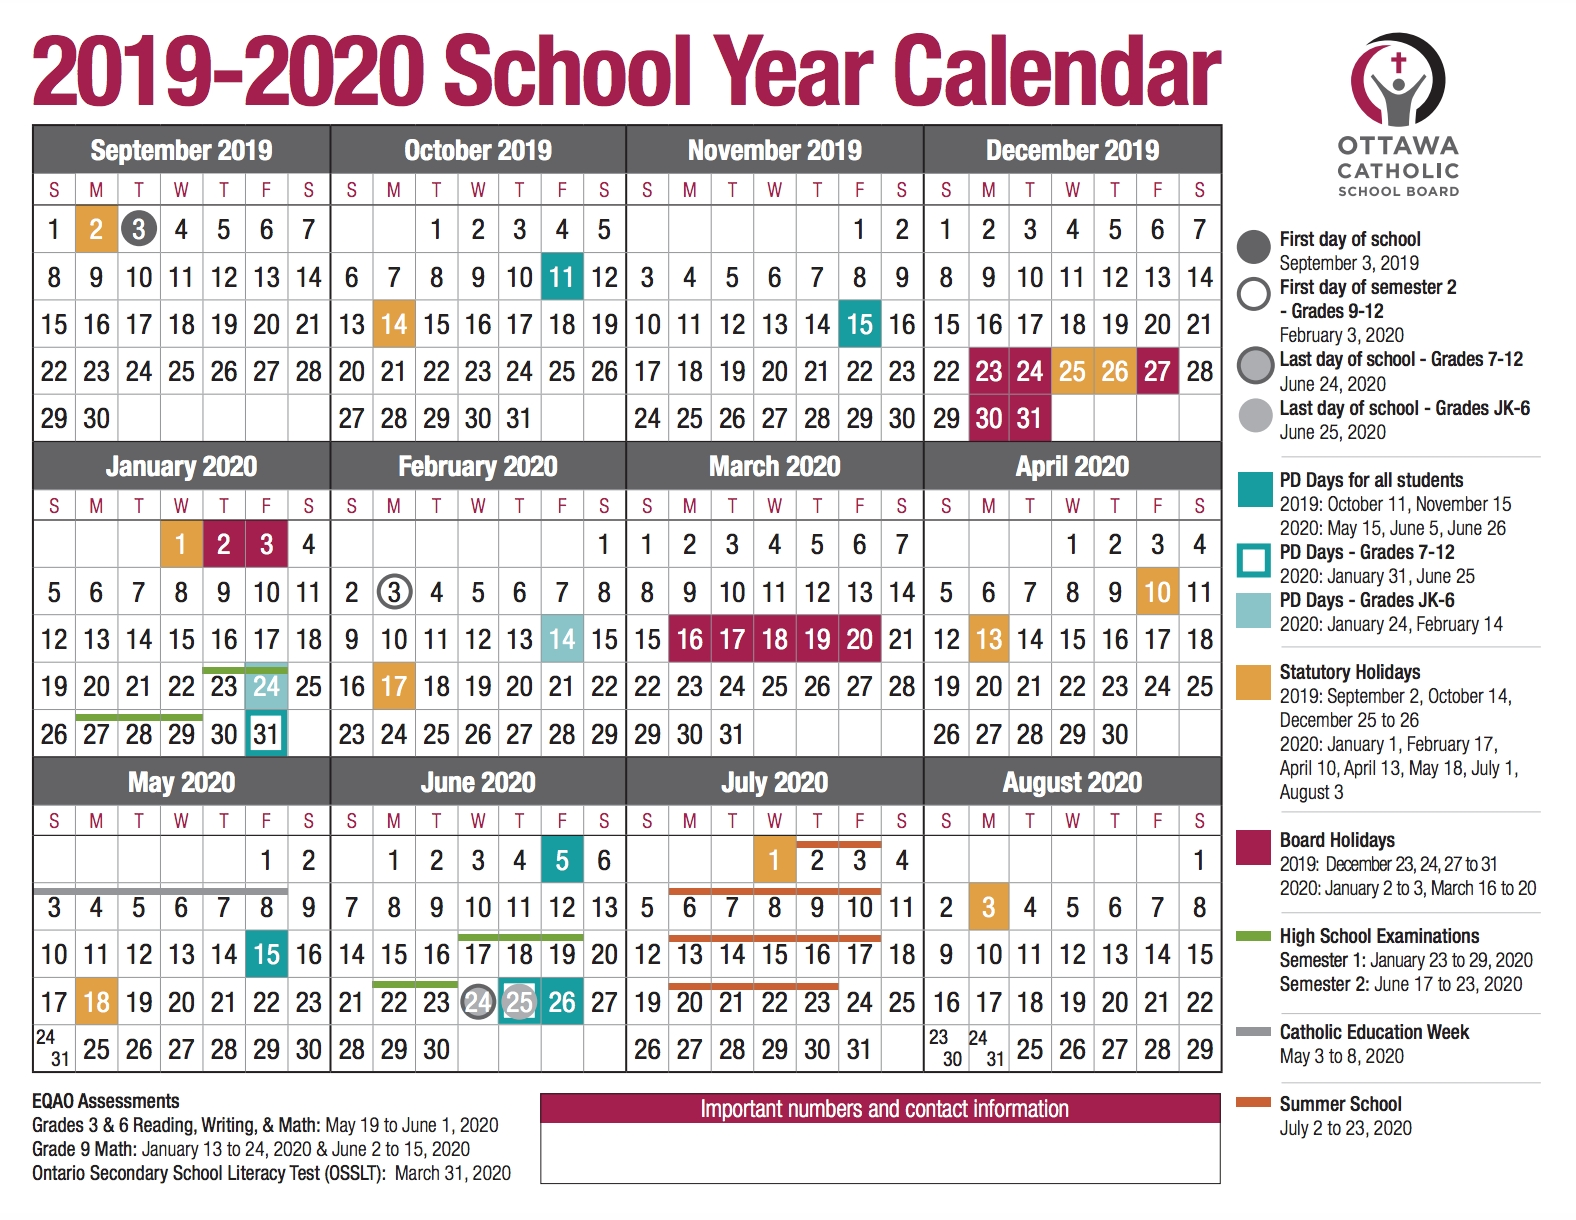 School Year Calendar From The Ocsb regarding Special Days Calendat 2019 For Schools